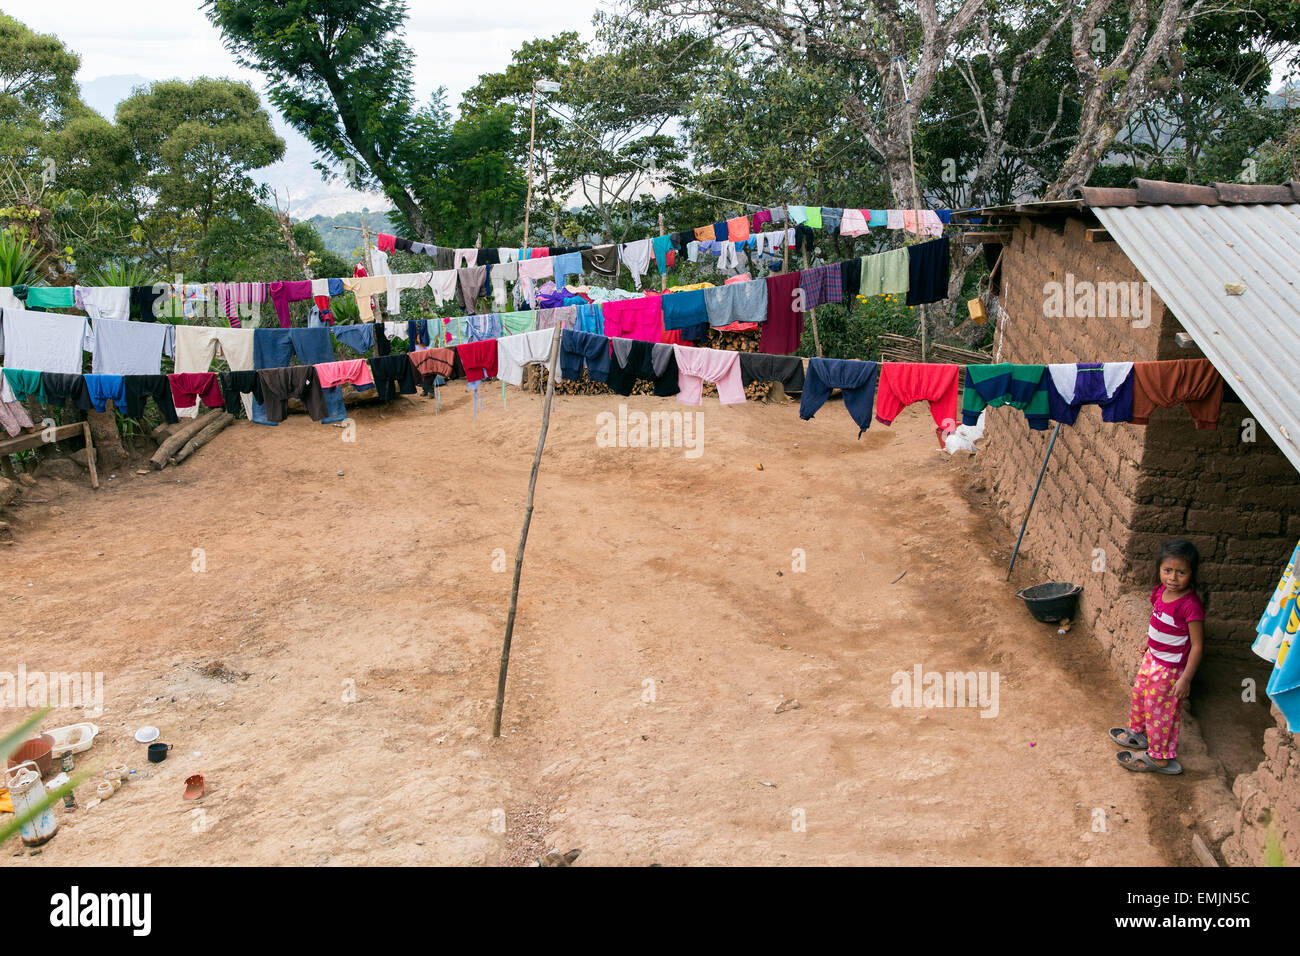 Guatemala,Jalapa, Palo Verde, adobe home with child and laundry. - Stock Image